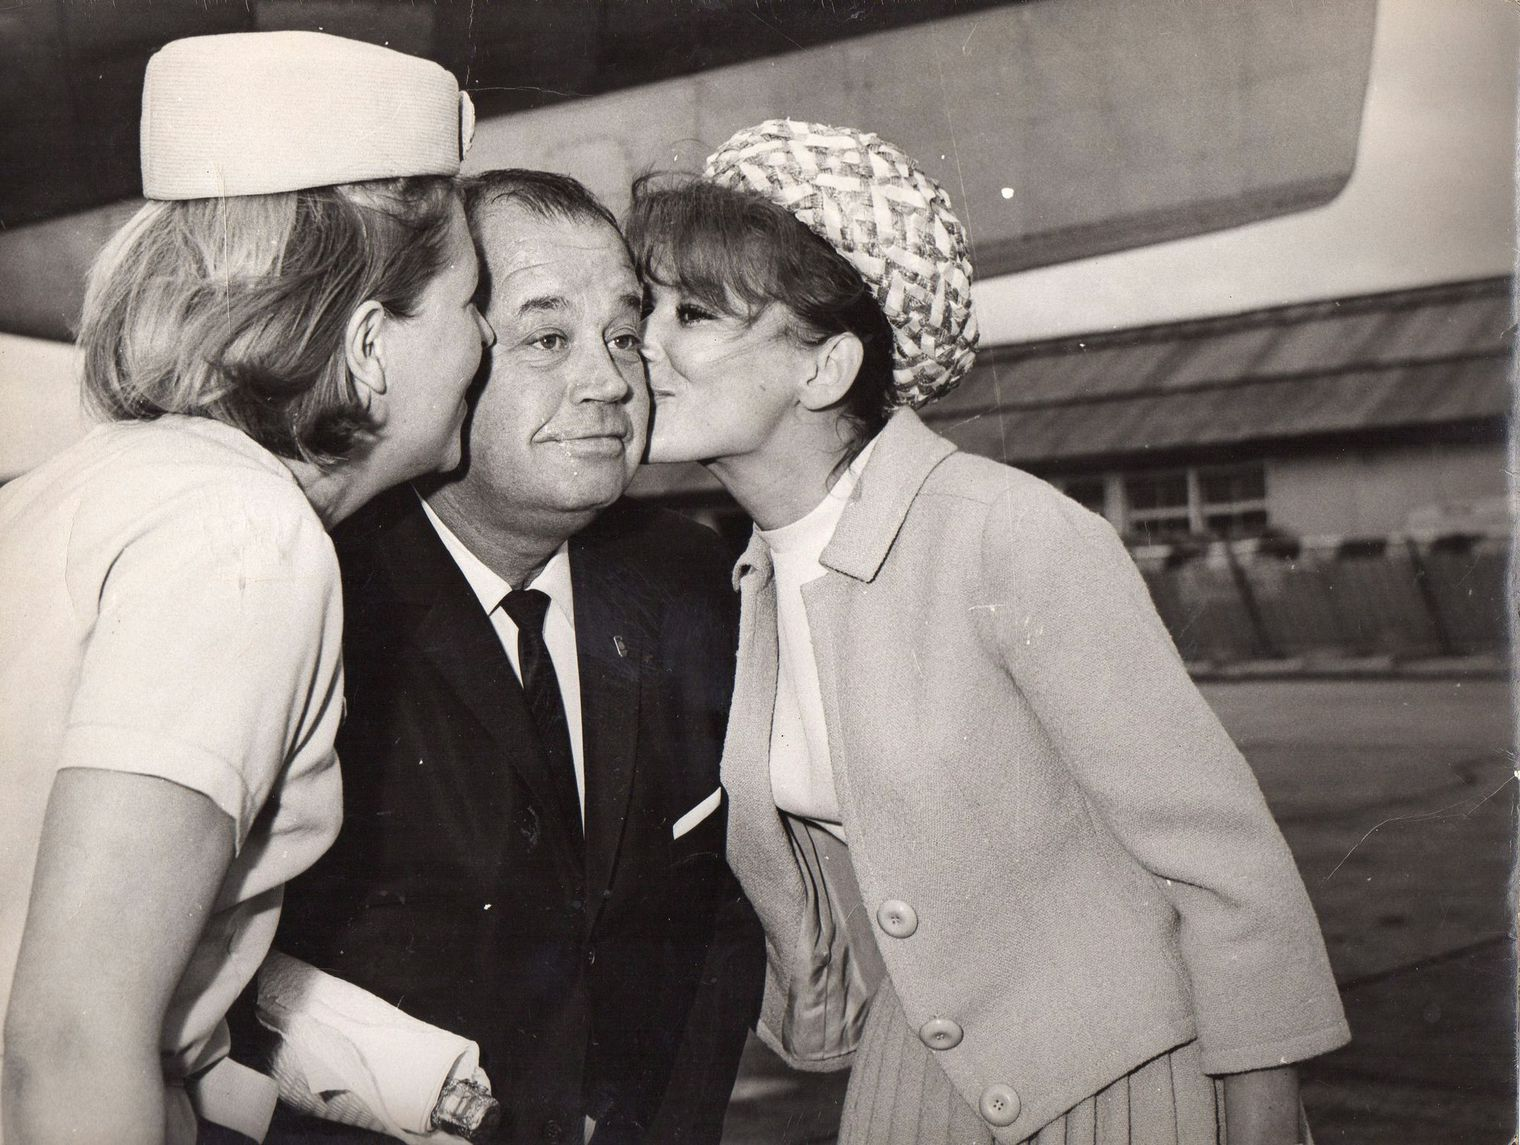 John Steel with the actress Irina Demick on the right Orly airport 1964.jpg